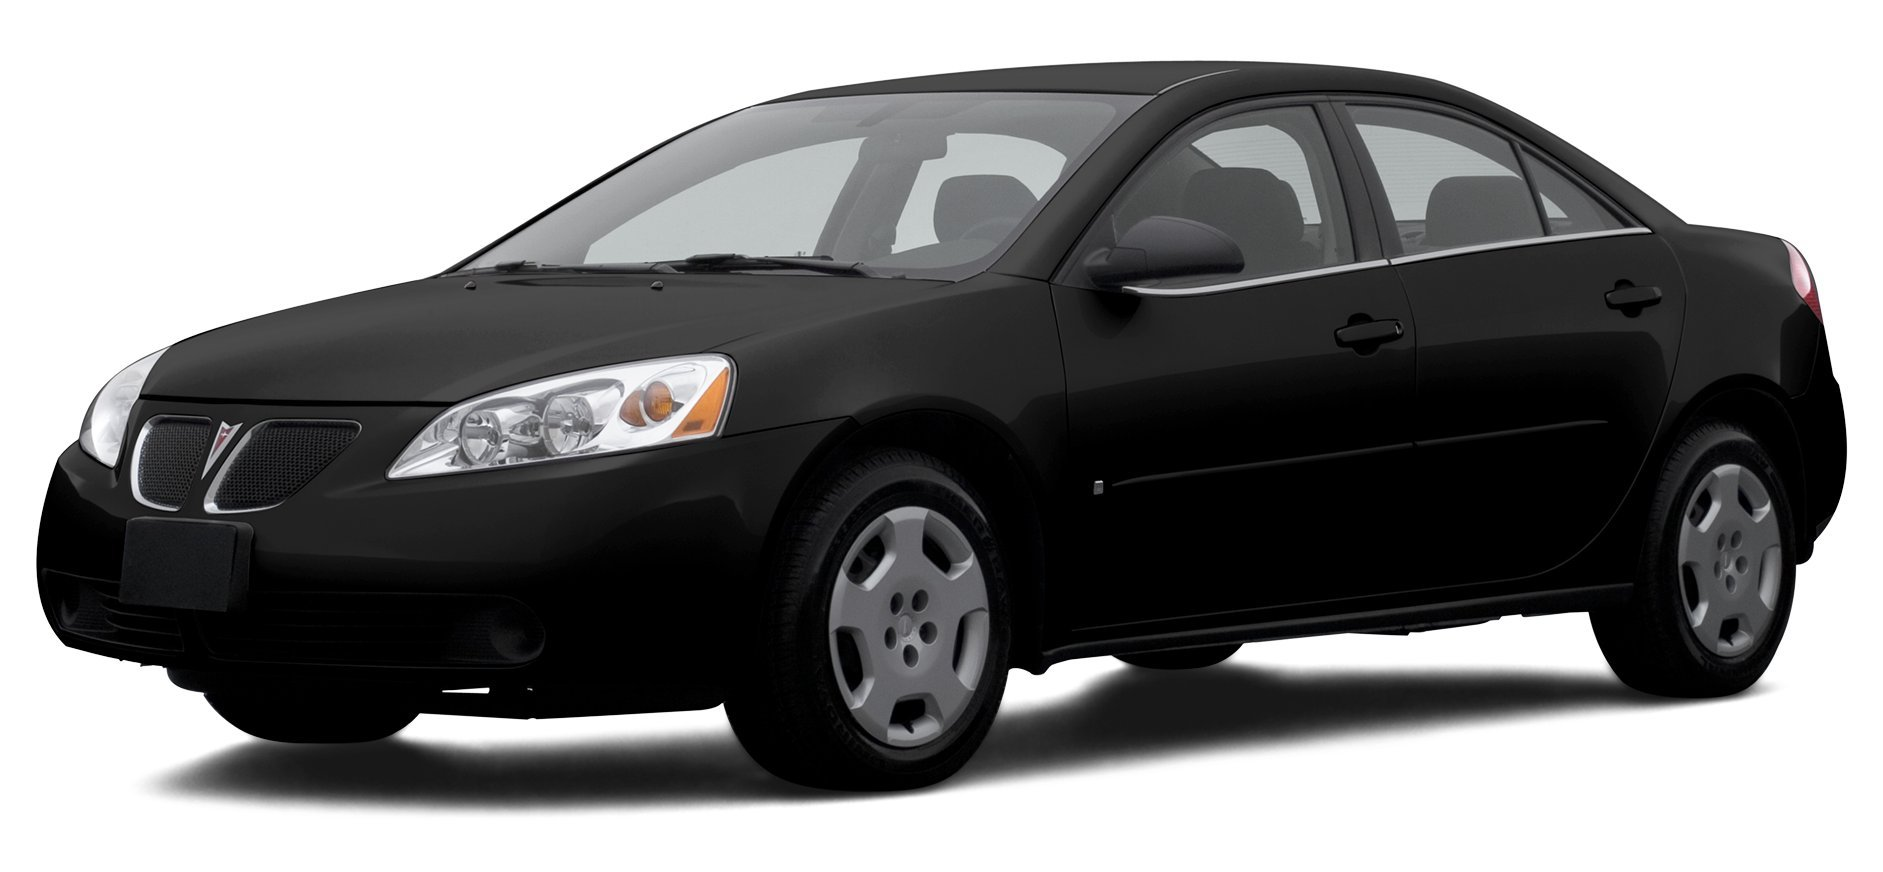 2007 Buick Lacrosse Reviews Images And Specs Vehicles 07 Fuse Diagram Pontiac G6 Gt 4 Door Sedan